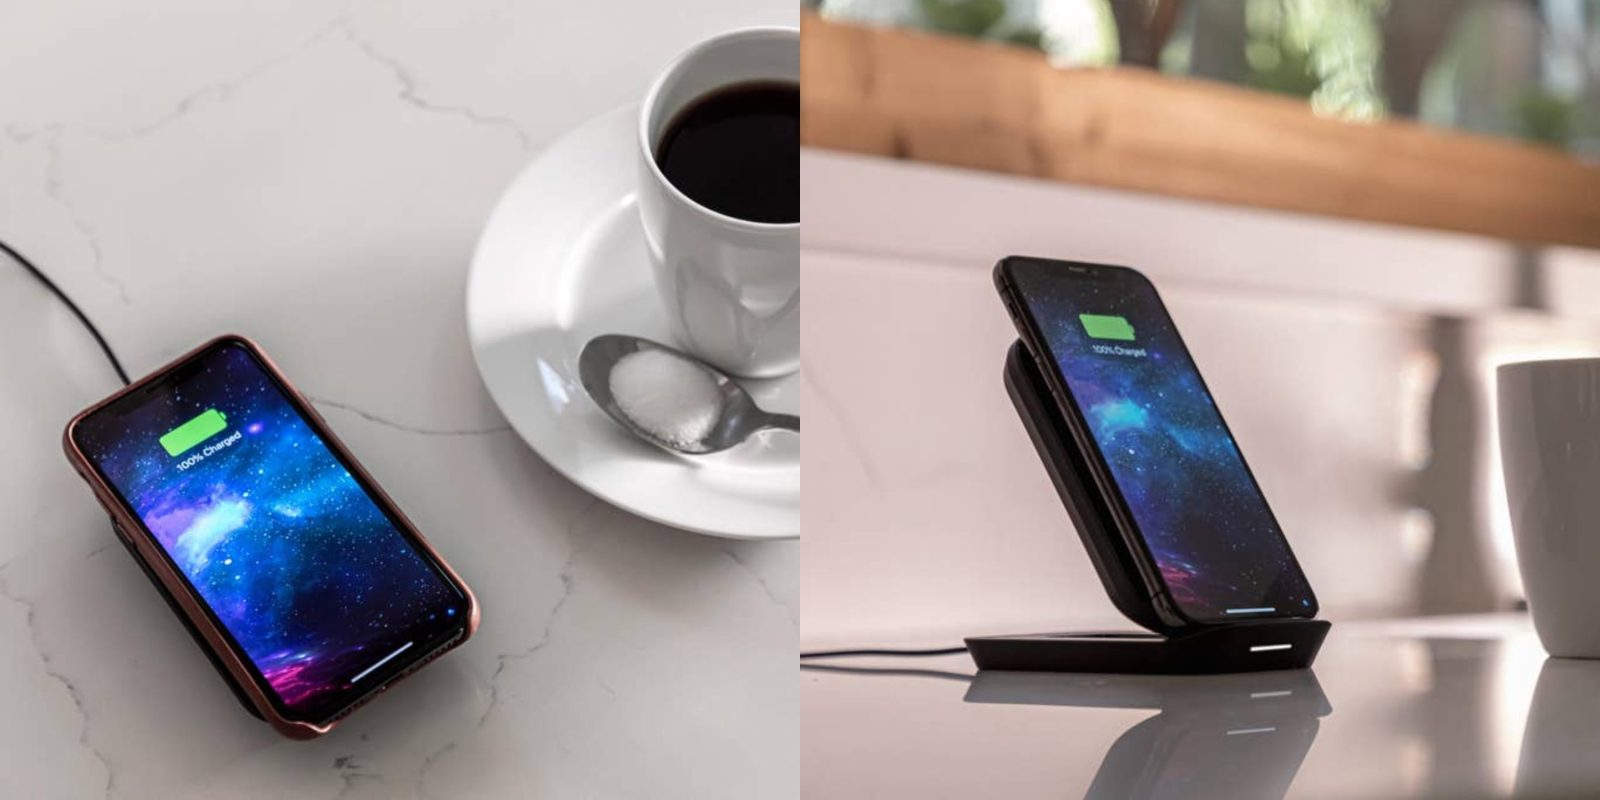 [Update: New Ultrasuede 3-in-1 Wireless Charging Pad too] Mophie launches convertible stand to pad wireless charger for iPhone